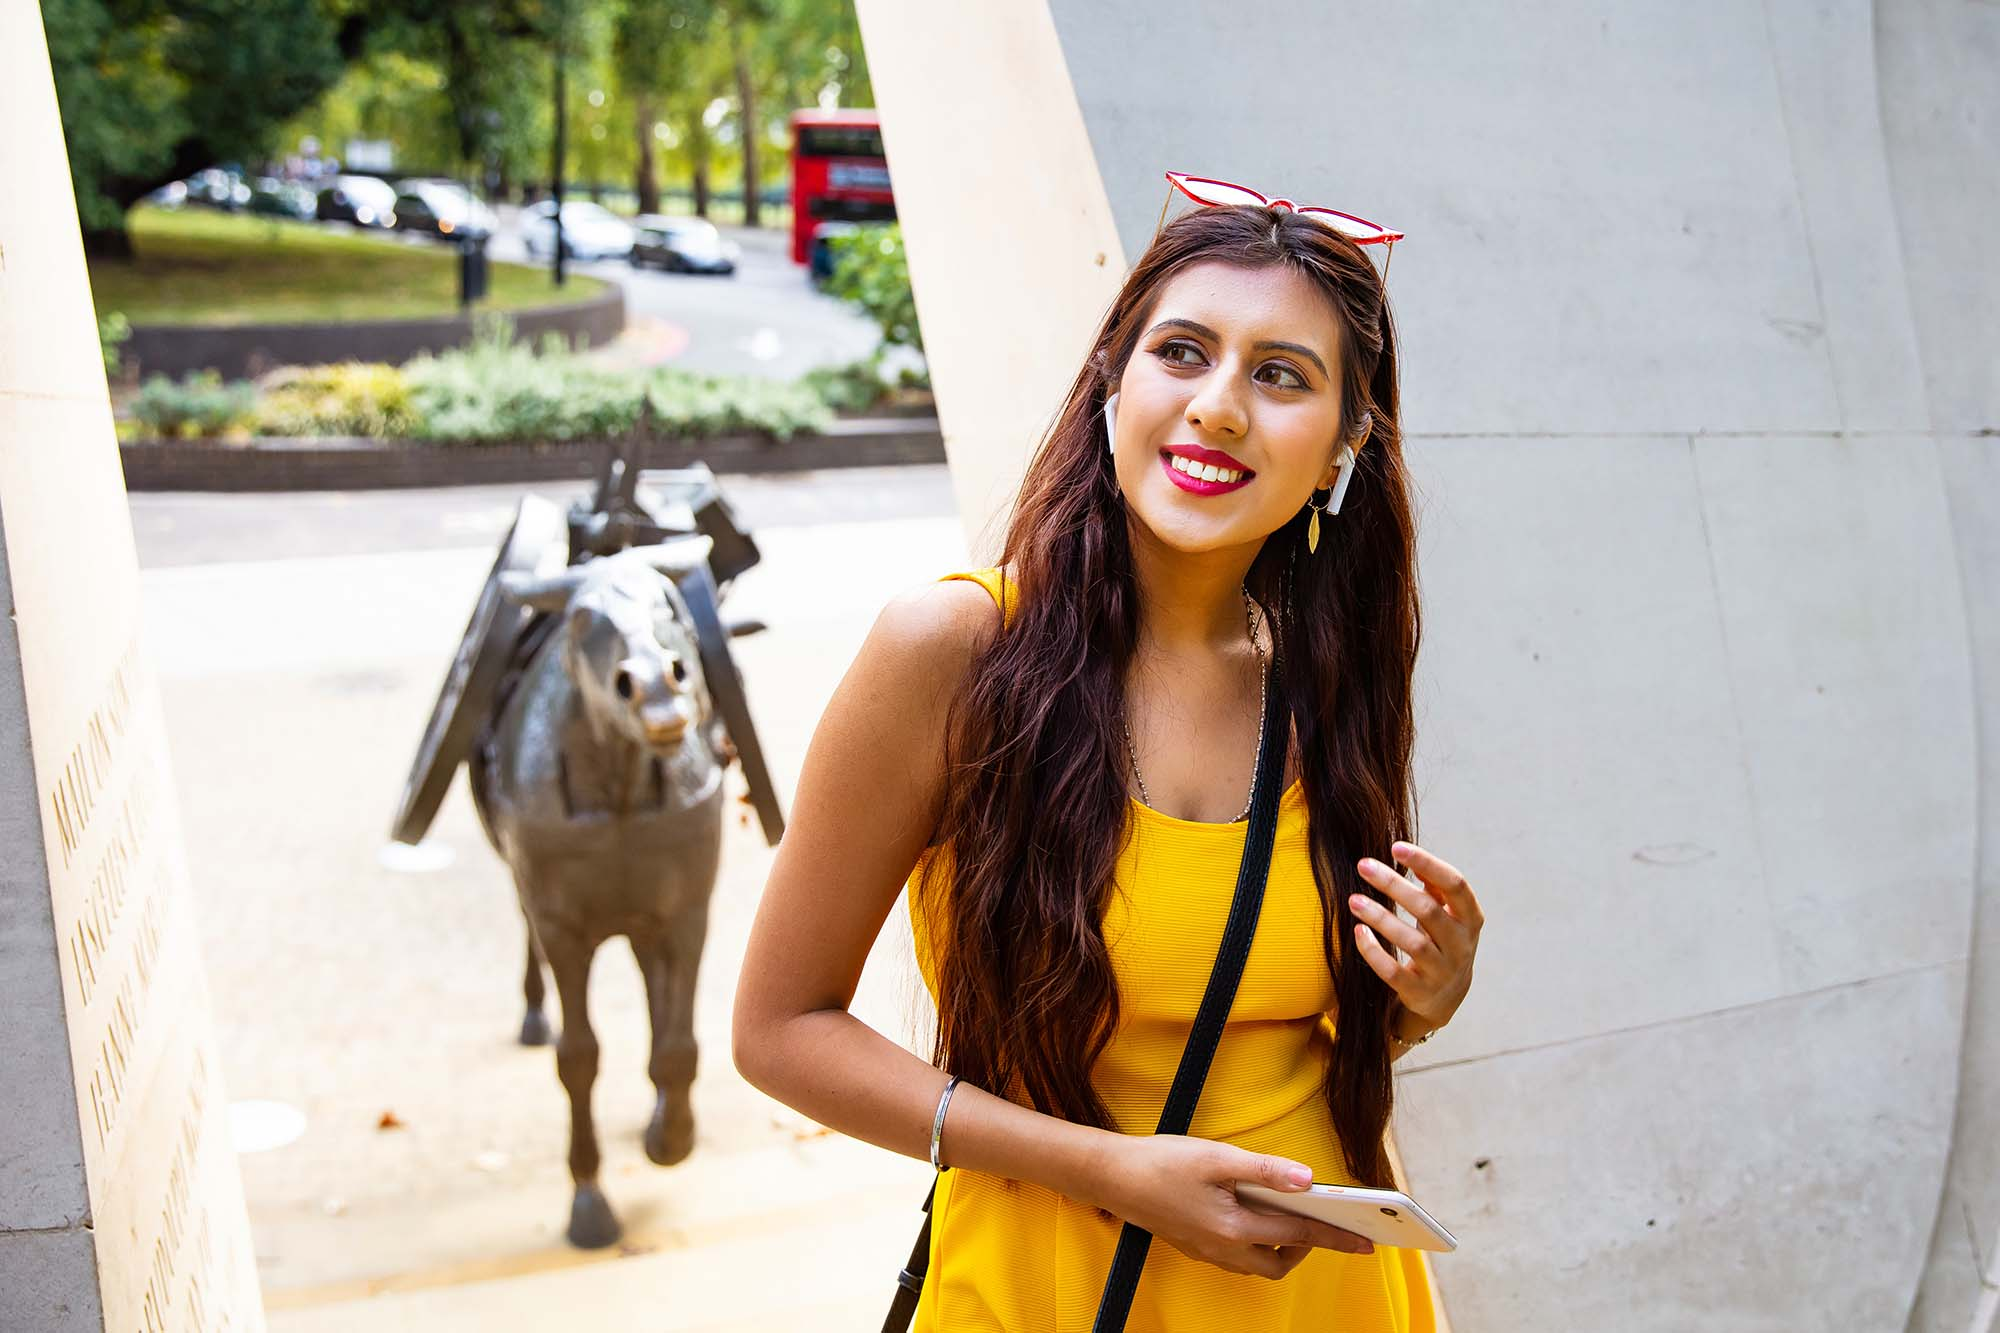 A young woman in a yellow dress is exploring the animals in war memorial in London